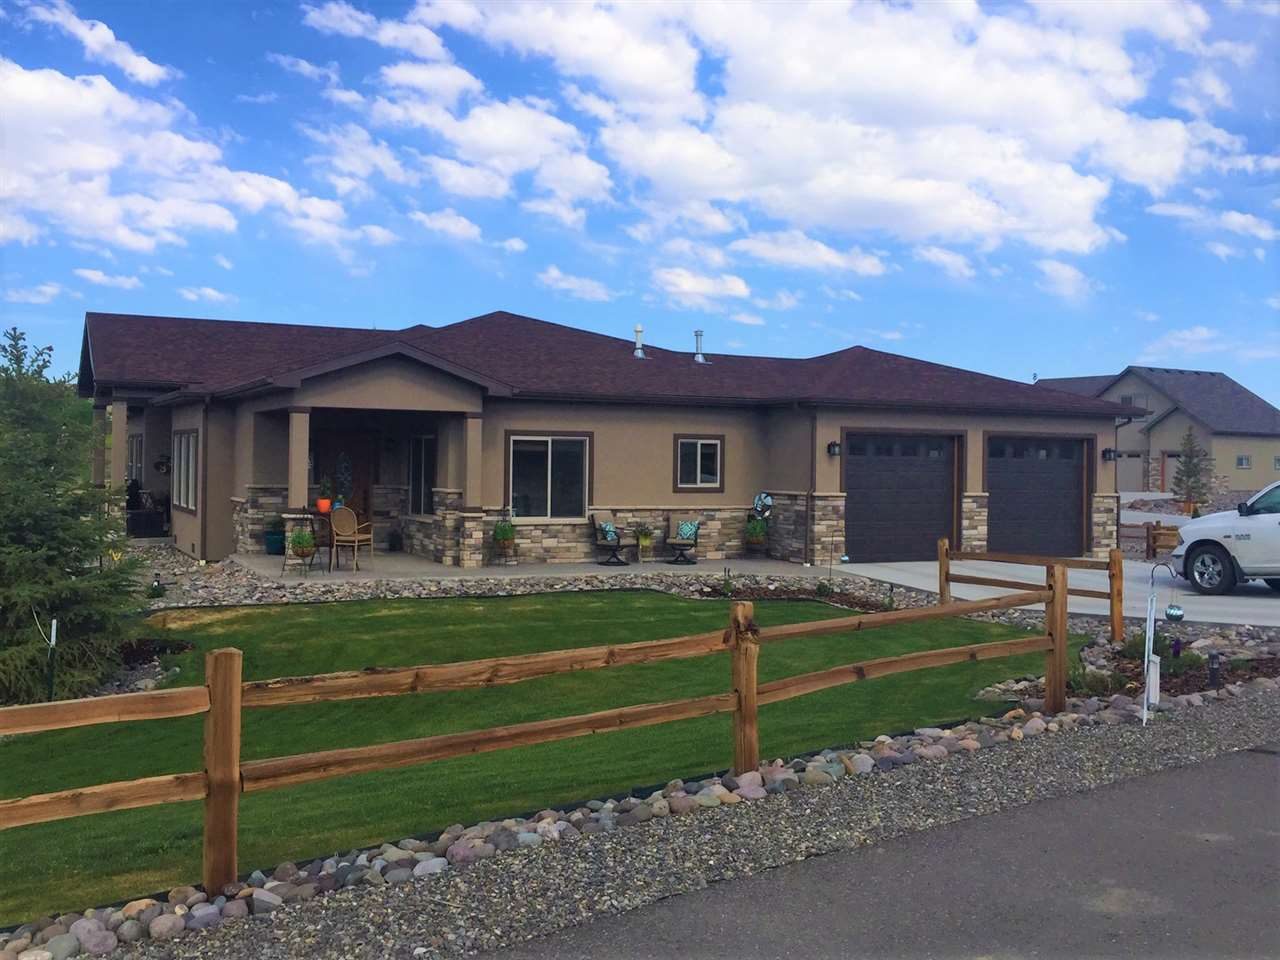 16039 6910 COURT, Montrose, CO 81401